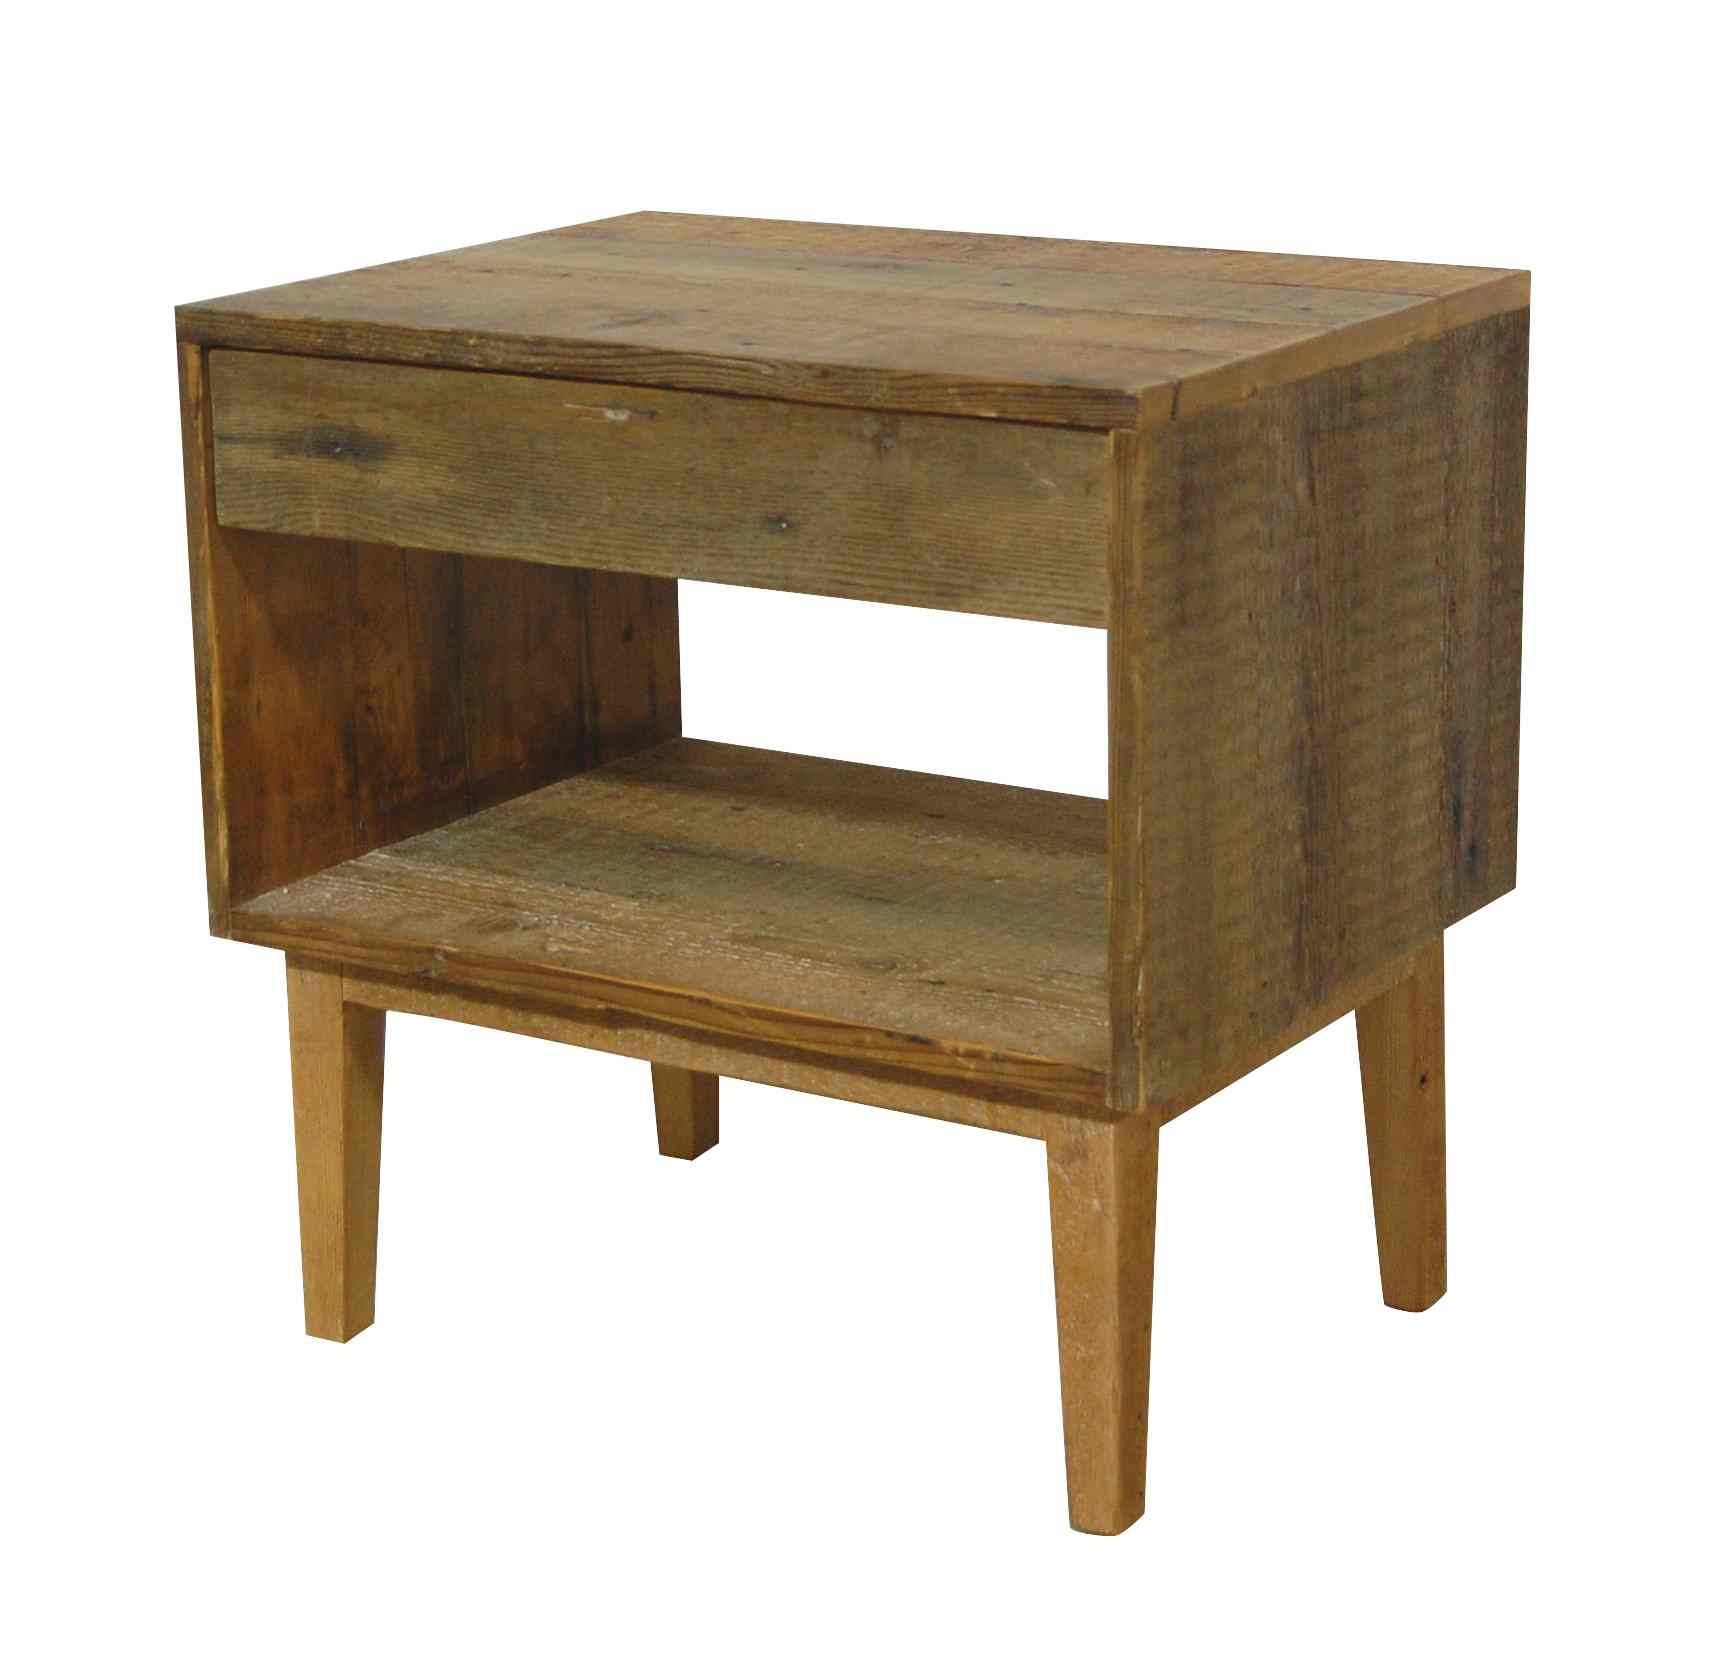 Woods furniture at the galleria for Wooden furniture